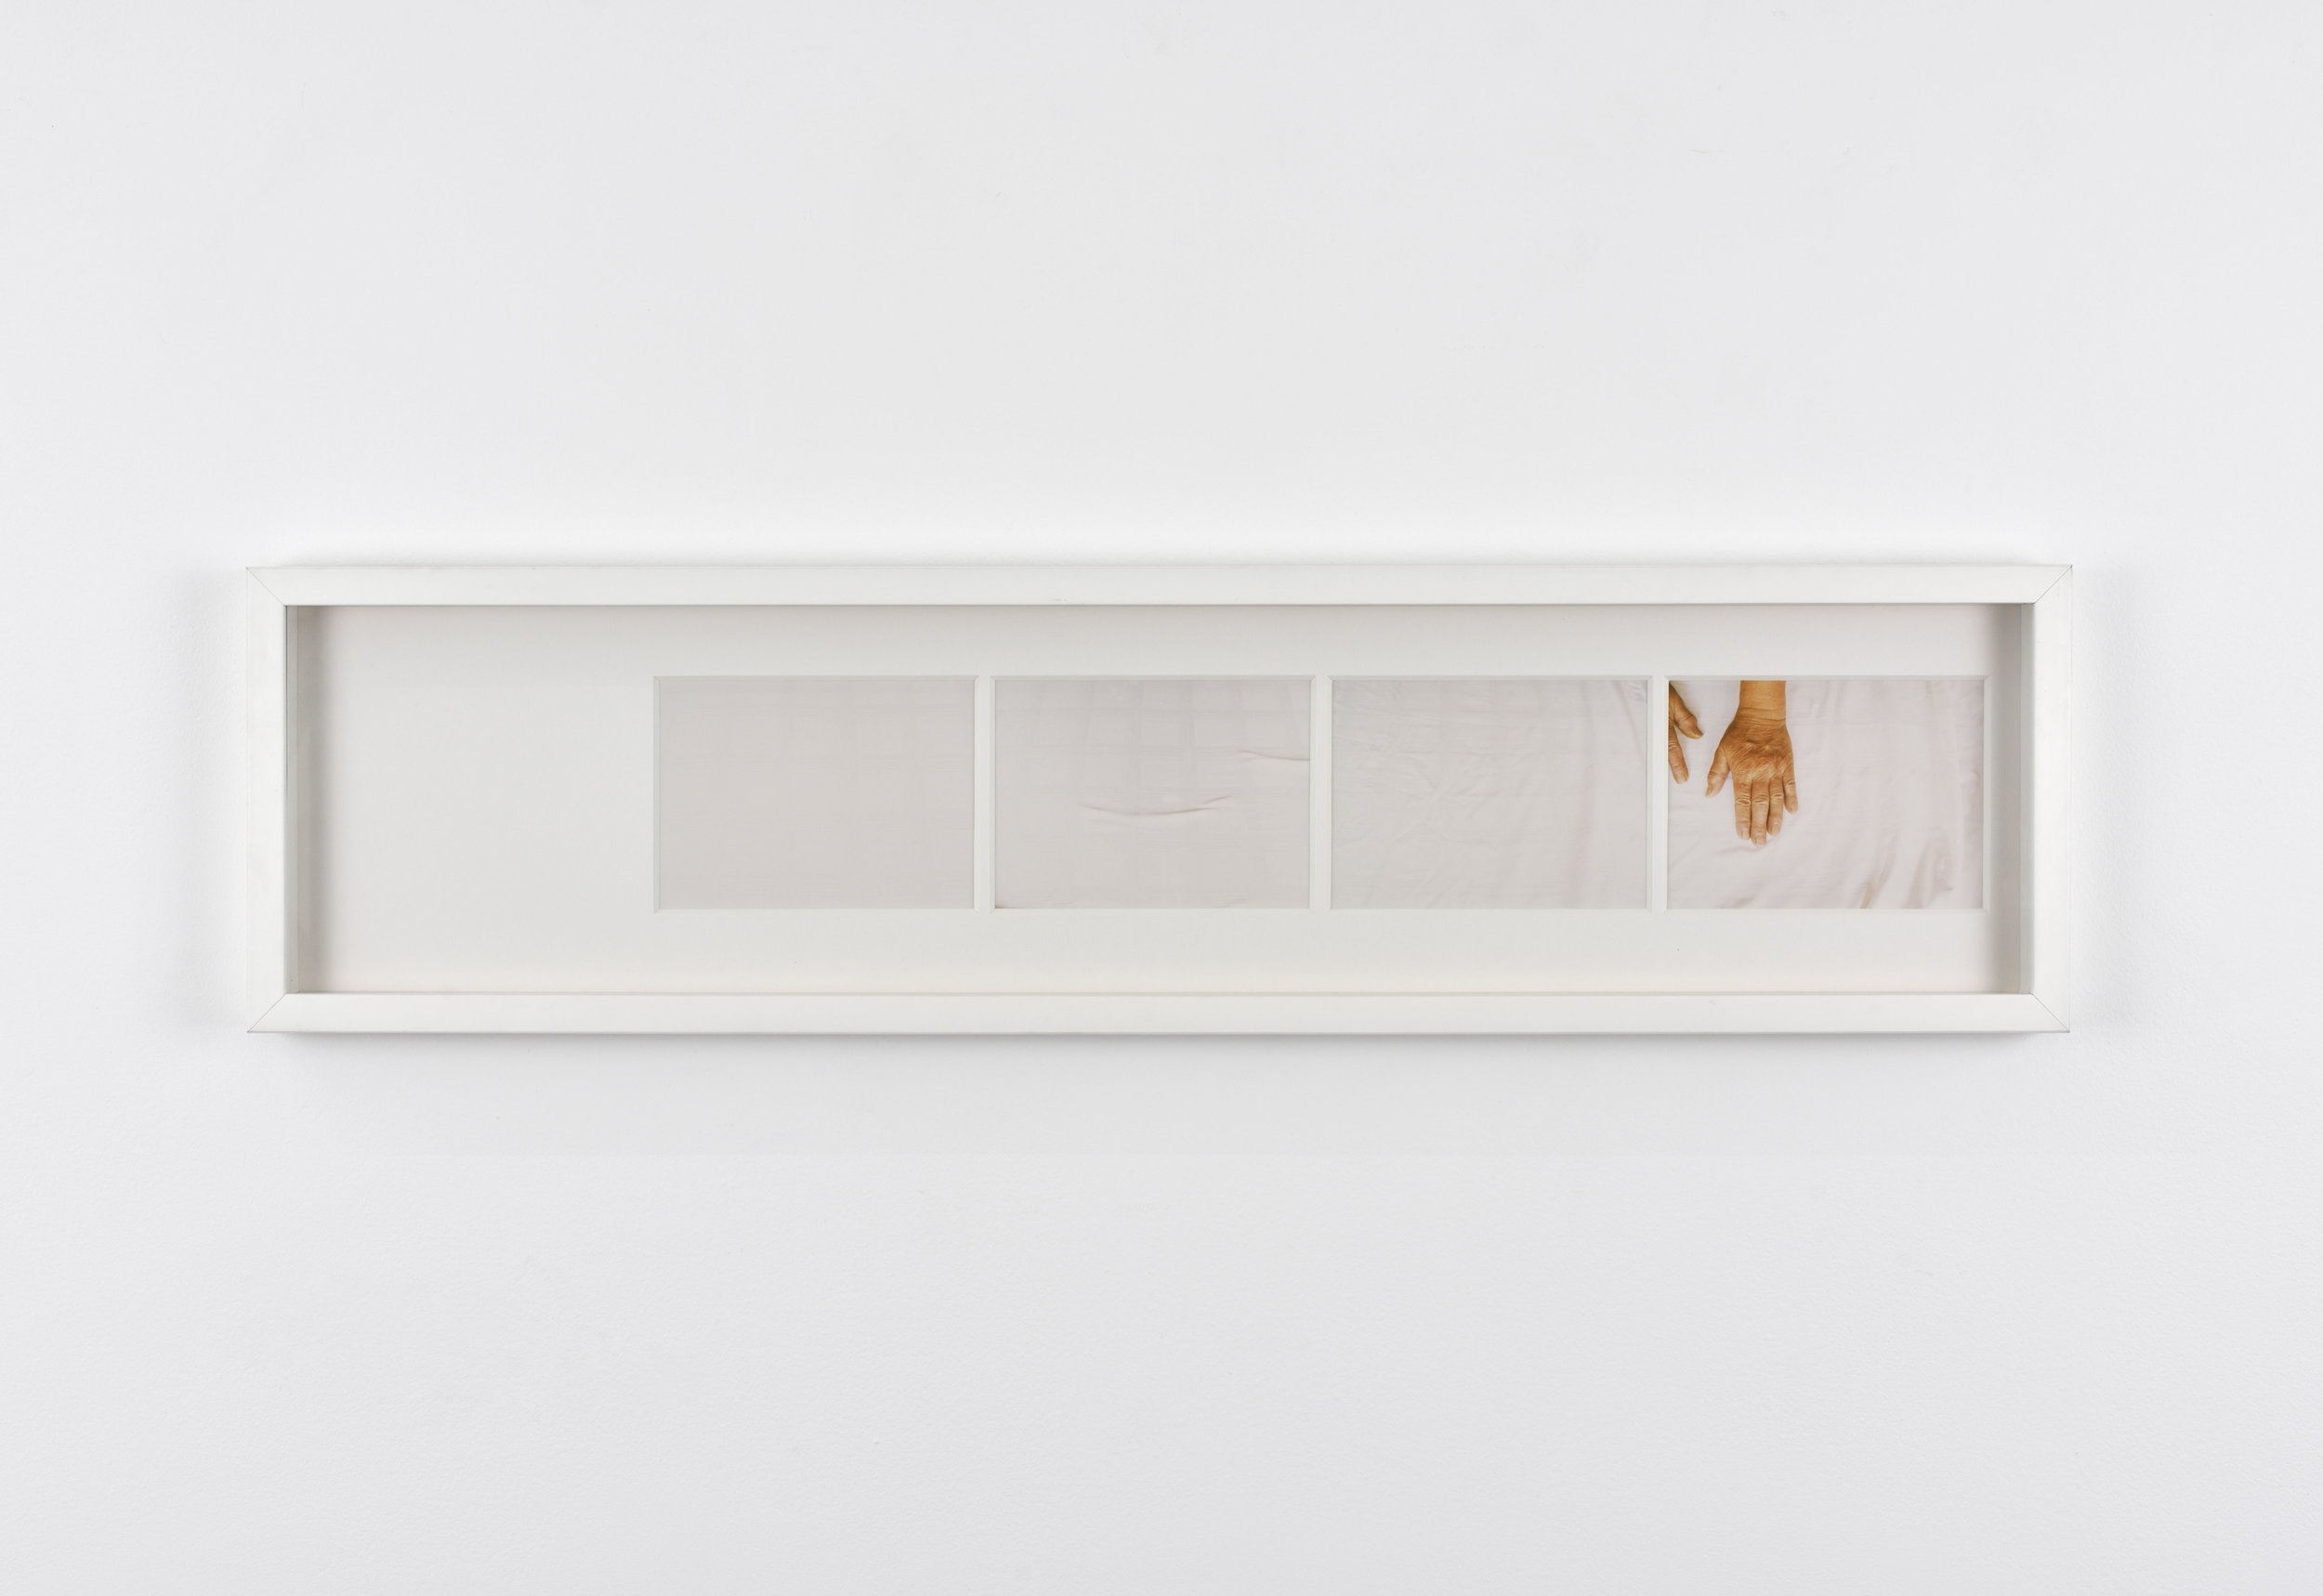 Maria HAHNENKAMP Untitled, 1995 c-print 9 1/16 x 35 13/16 x 1 3/16 in (23 x 91 x 3 cm) Edition of 3